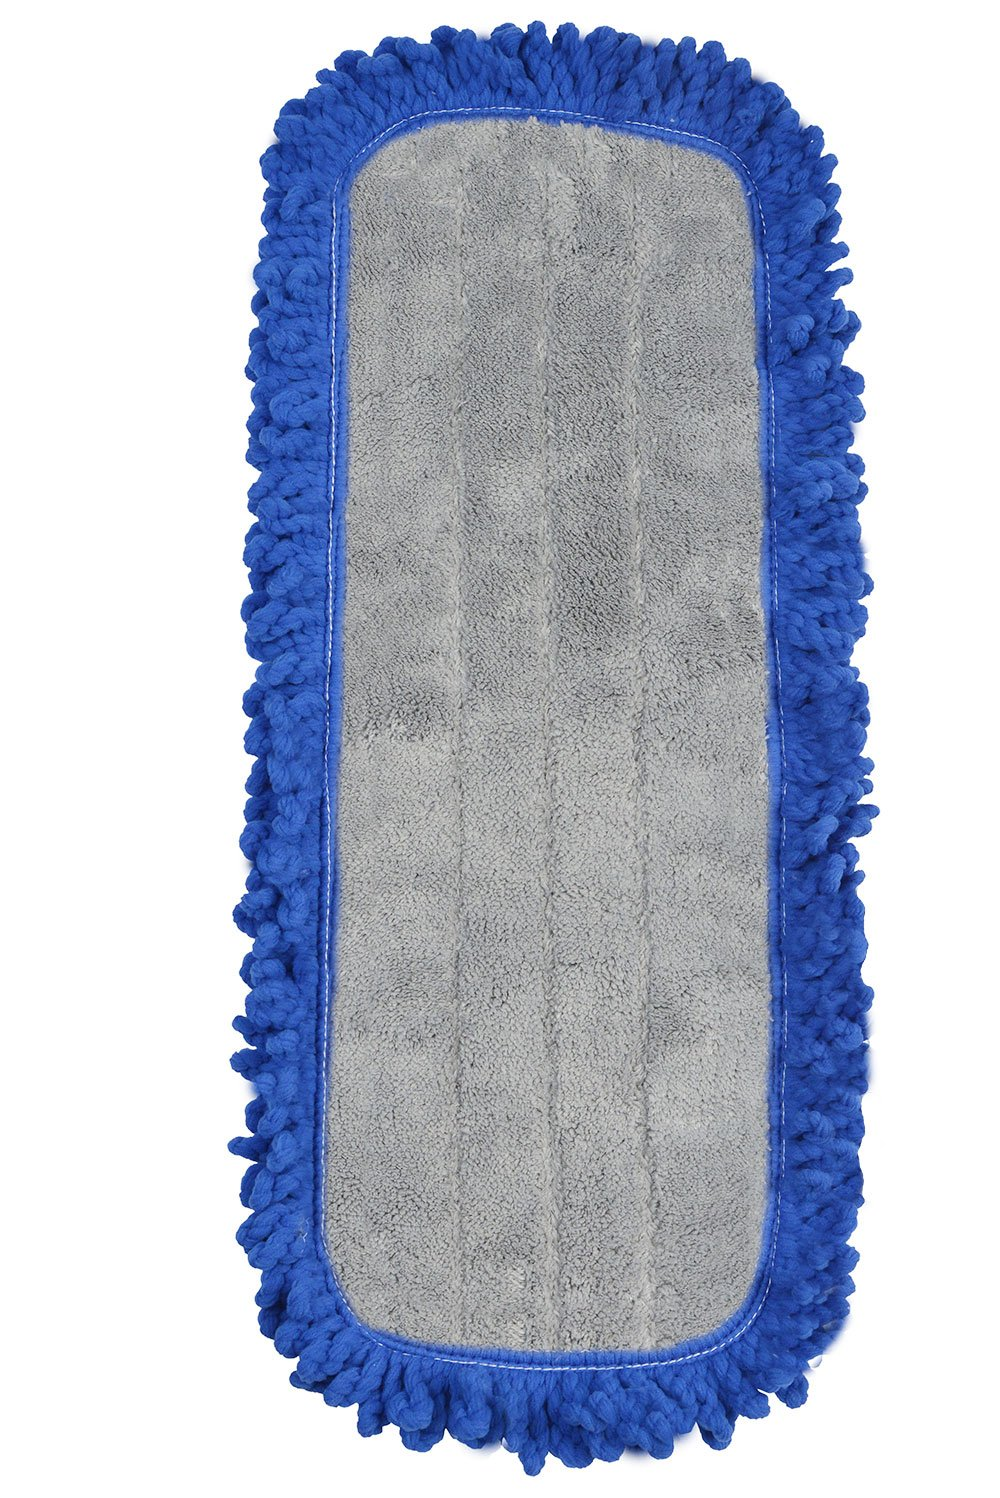 JaniFIber 6318-12 Microfiber Dust Mop Pads Commercial Washable Reusable, Blue, 18 x 5 Inch, Pack of 12